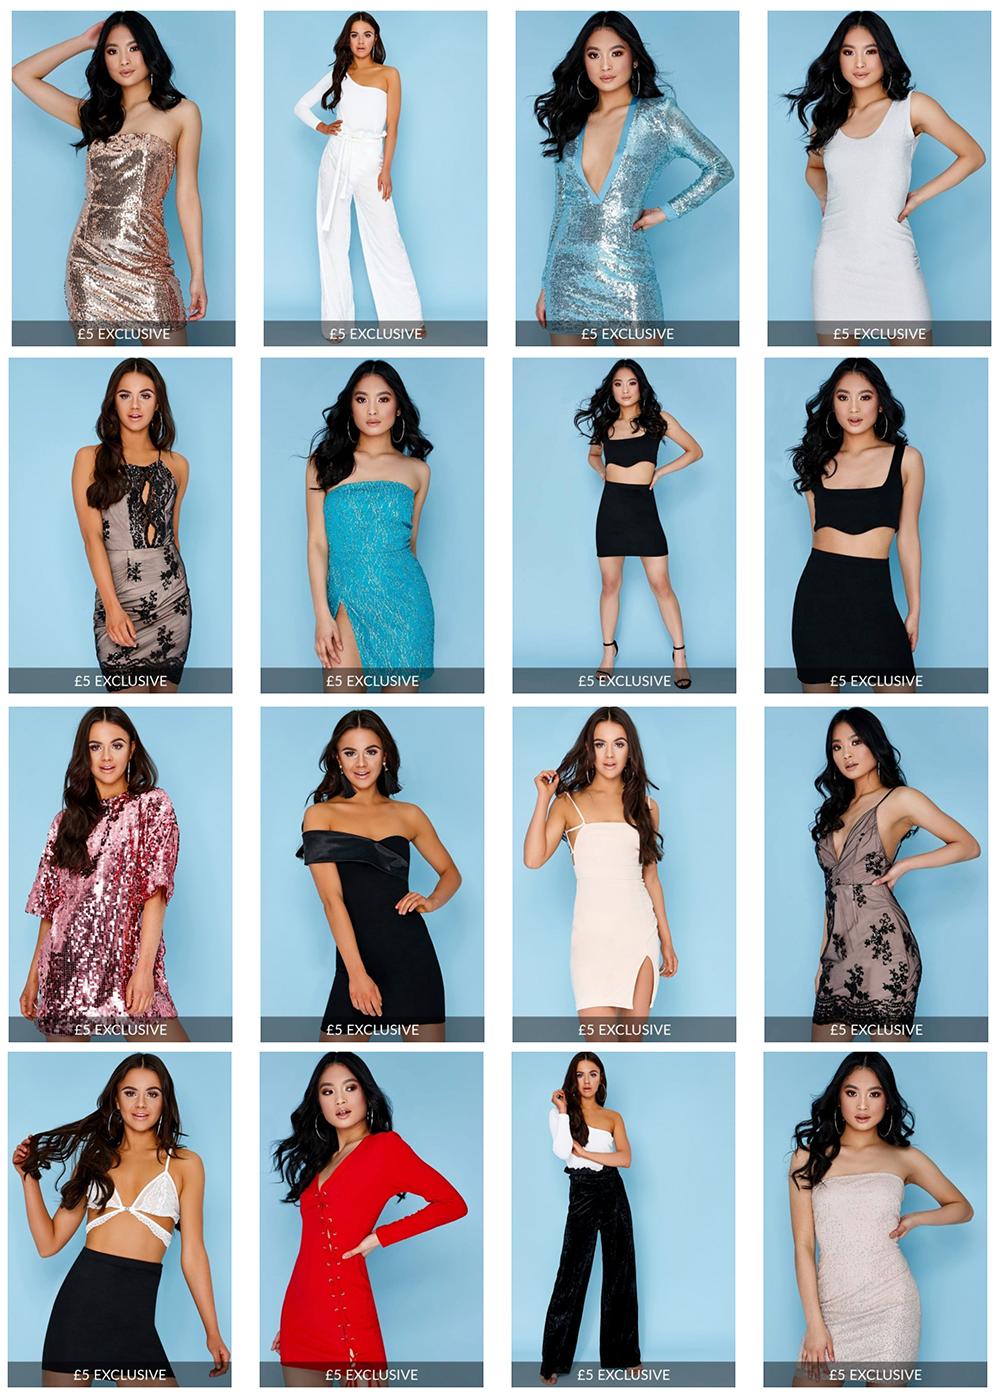 abdb8ccf7ad3 These Stunning Dresses You Can Get Online For £5 Or Under – Fupping